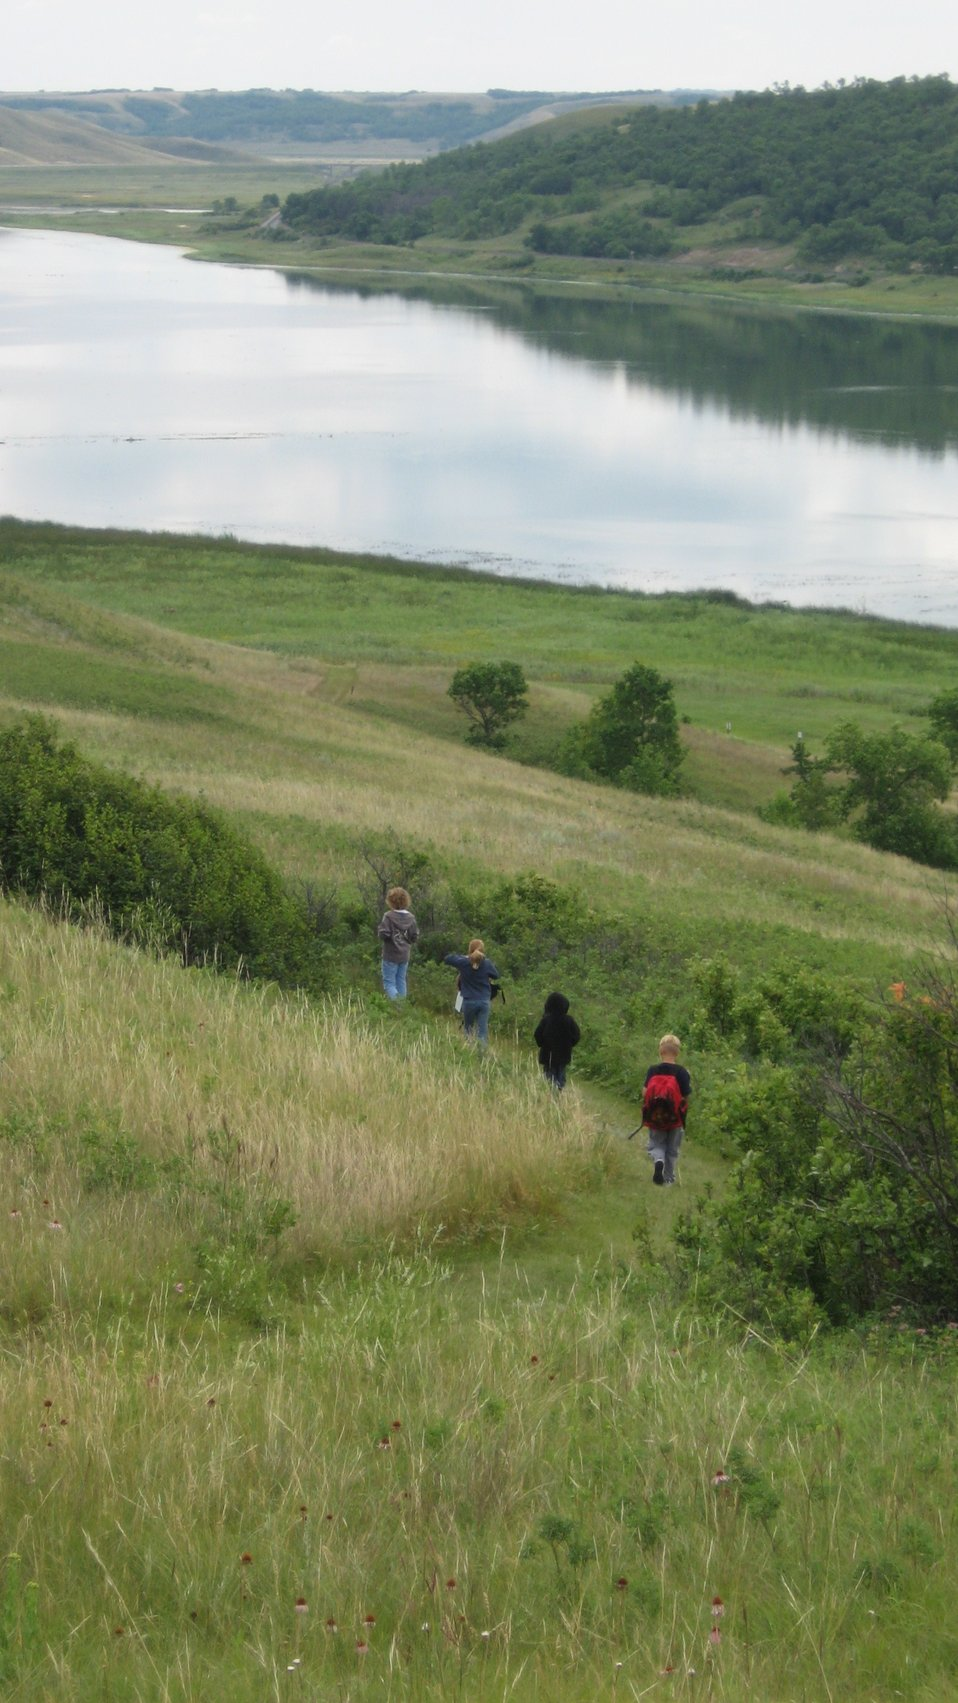 Hiking in Des Lacs National Wildlife Refuge